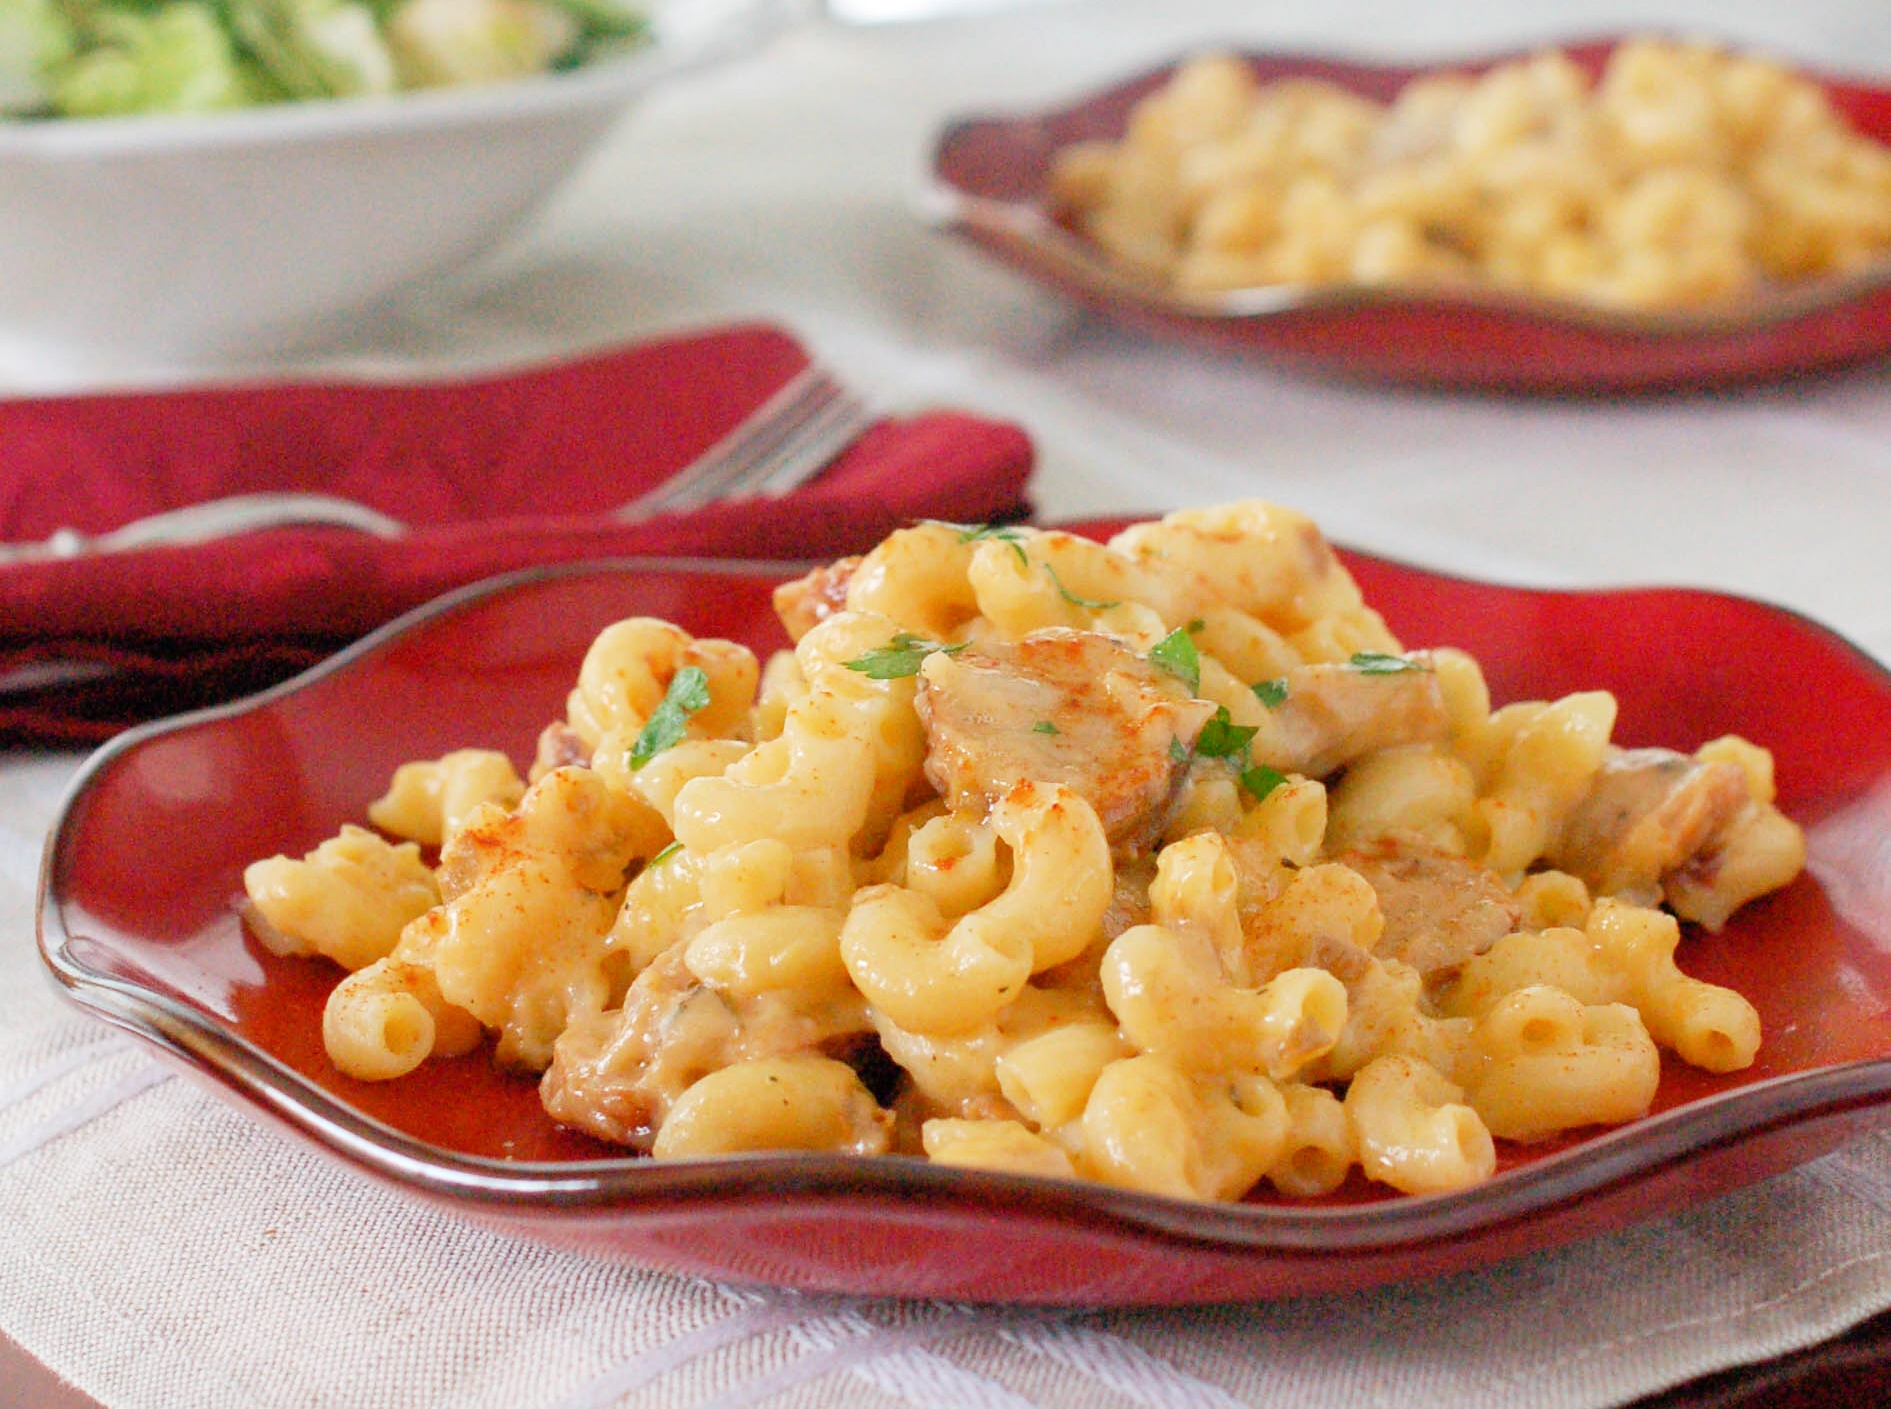 cajun mac and cheese3 (1 of 1).jpg